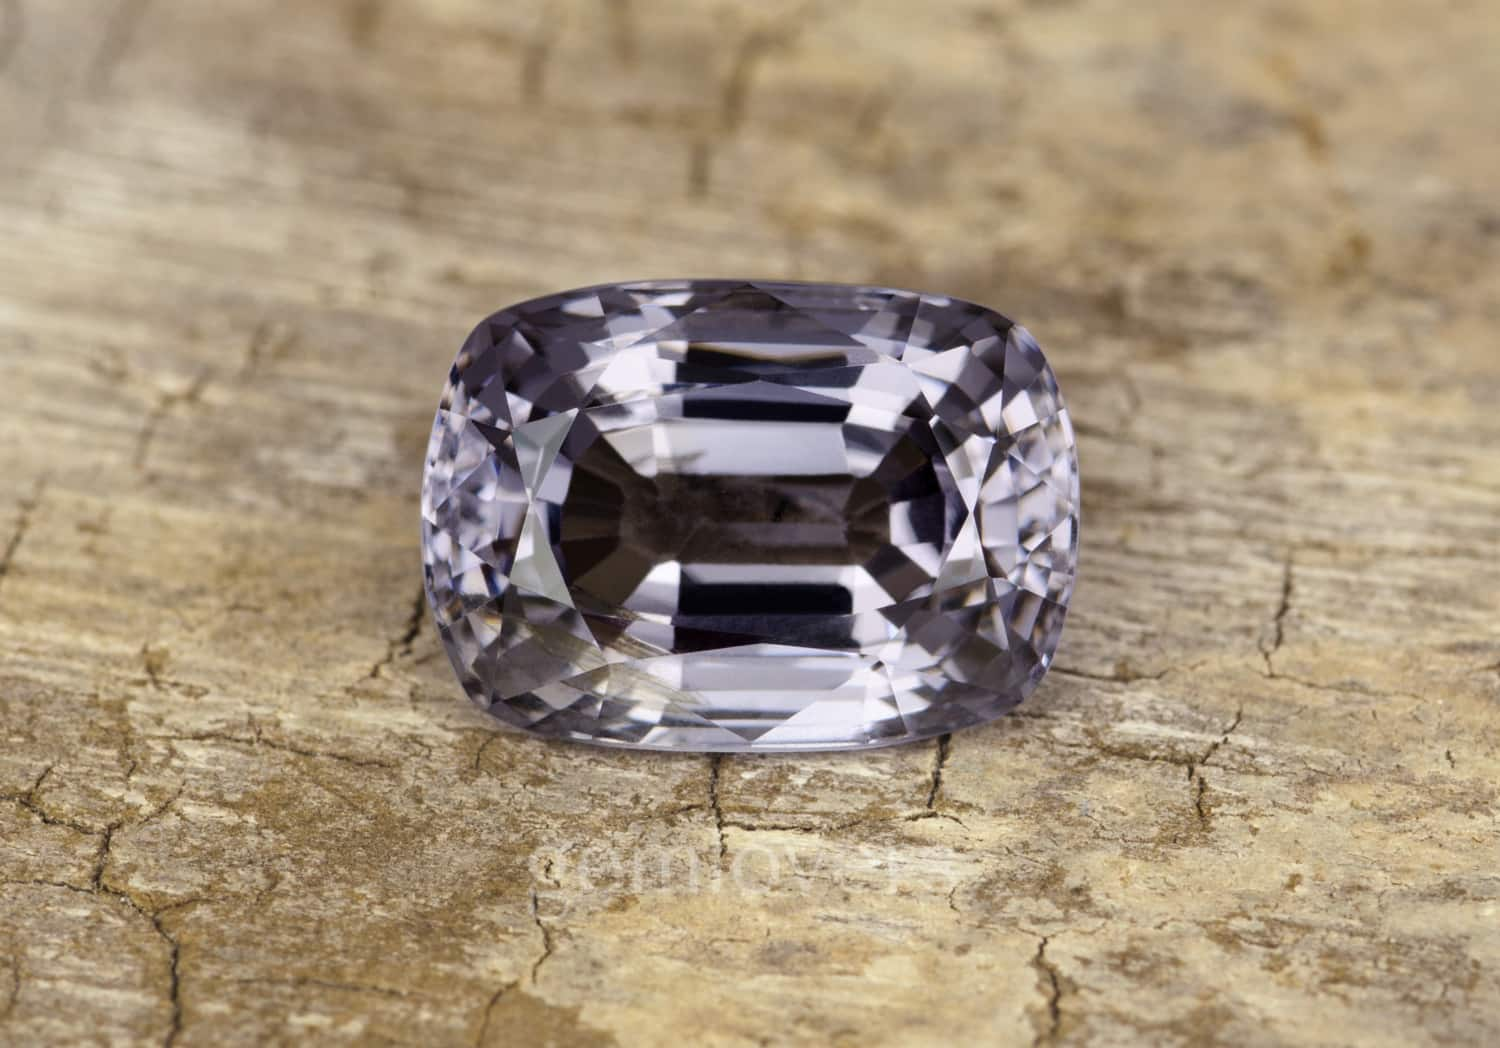 Gray spinel clarity